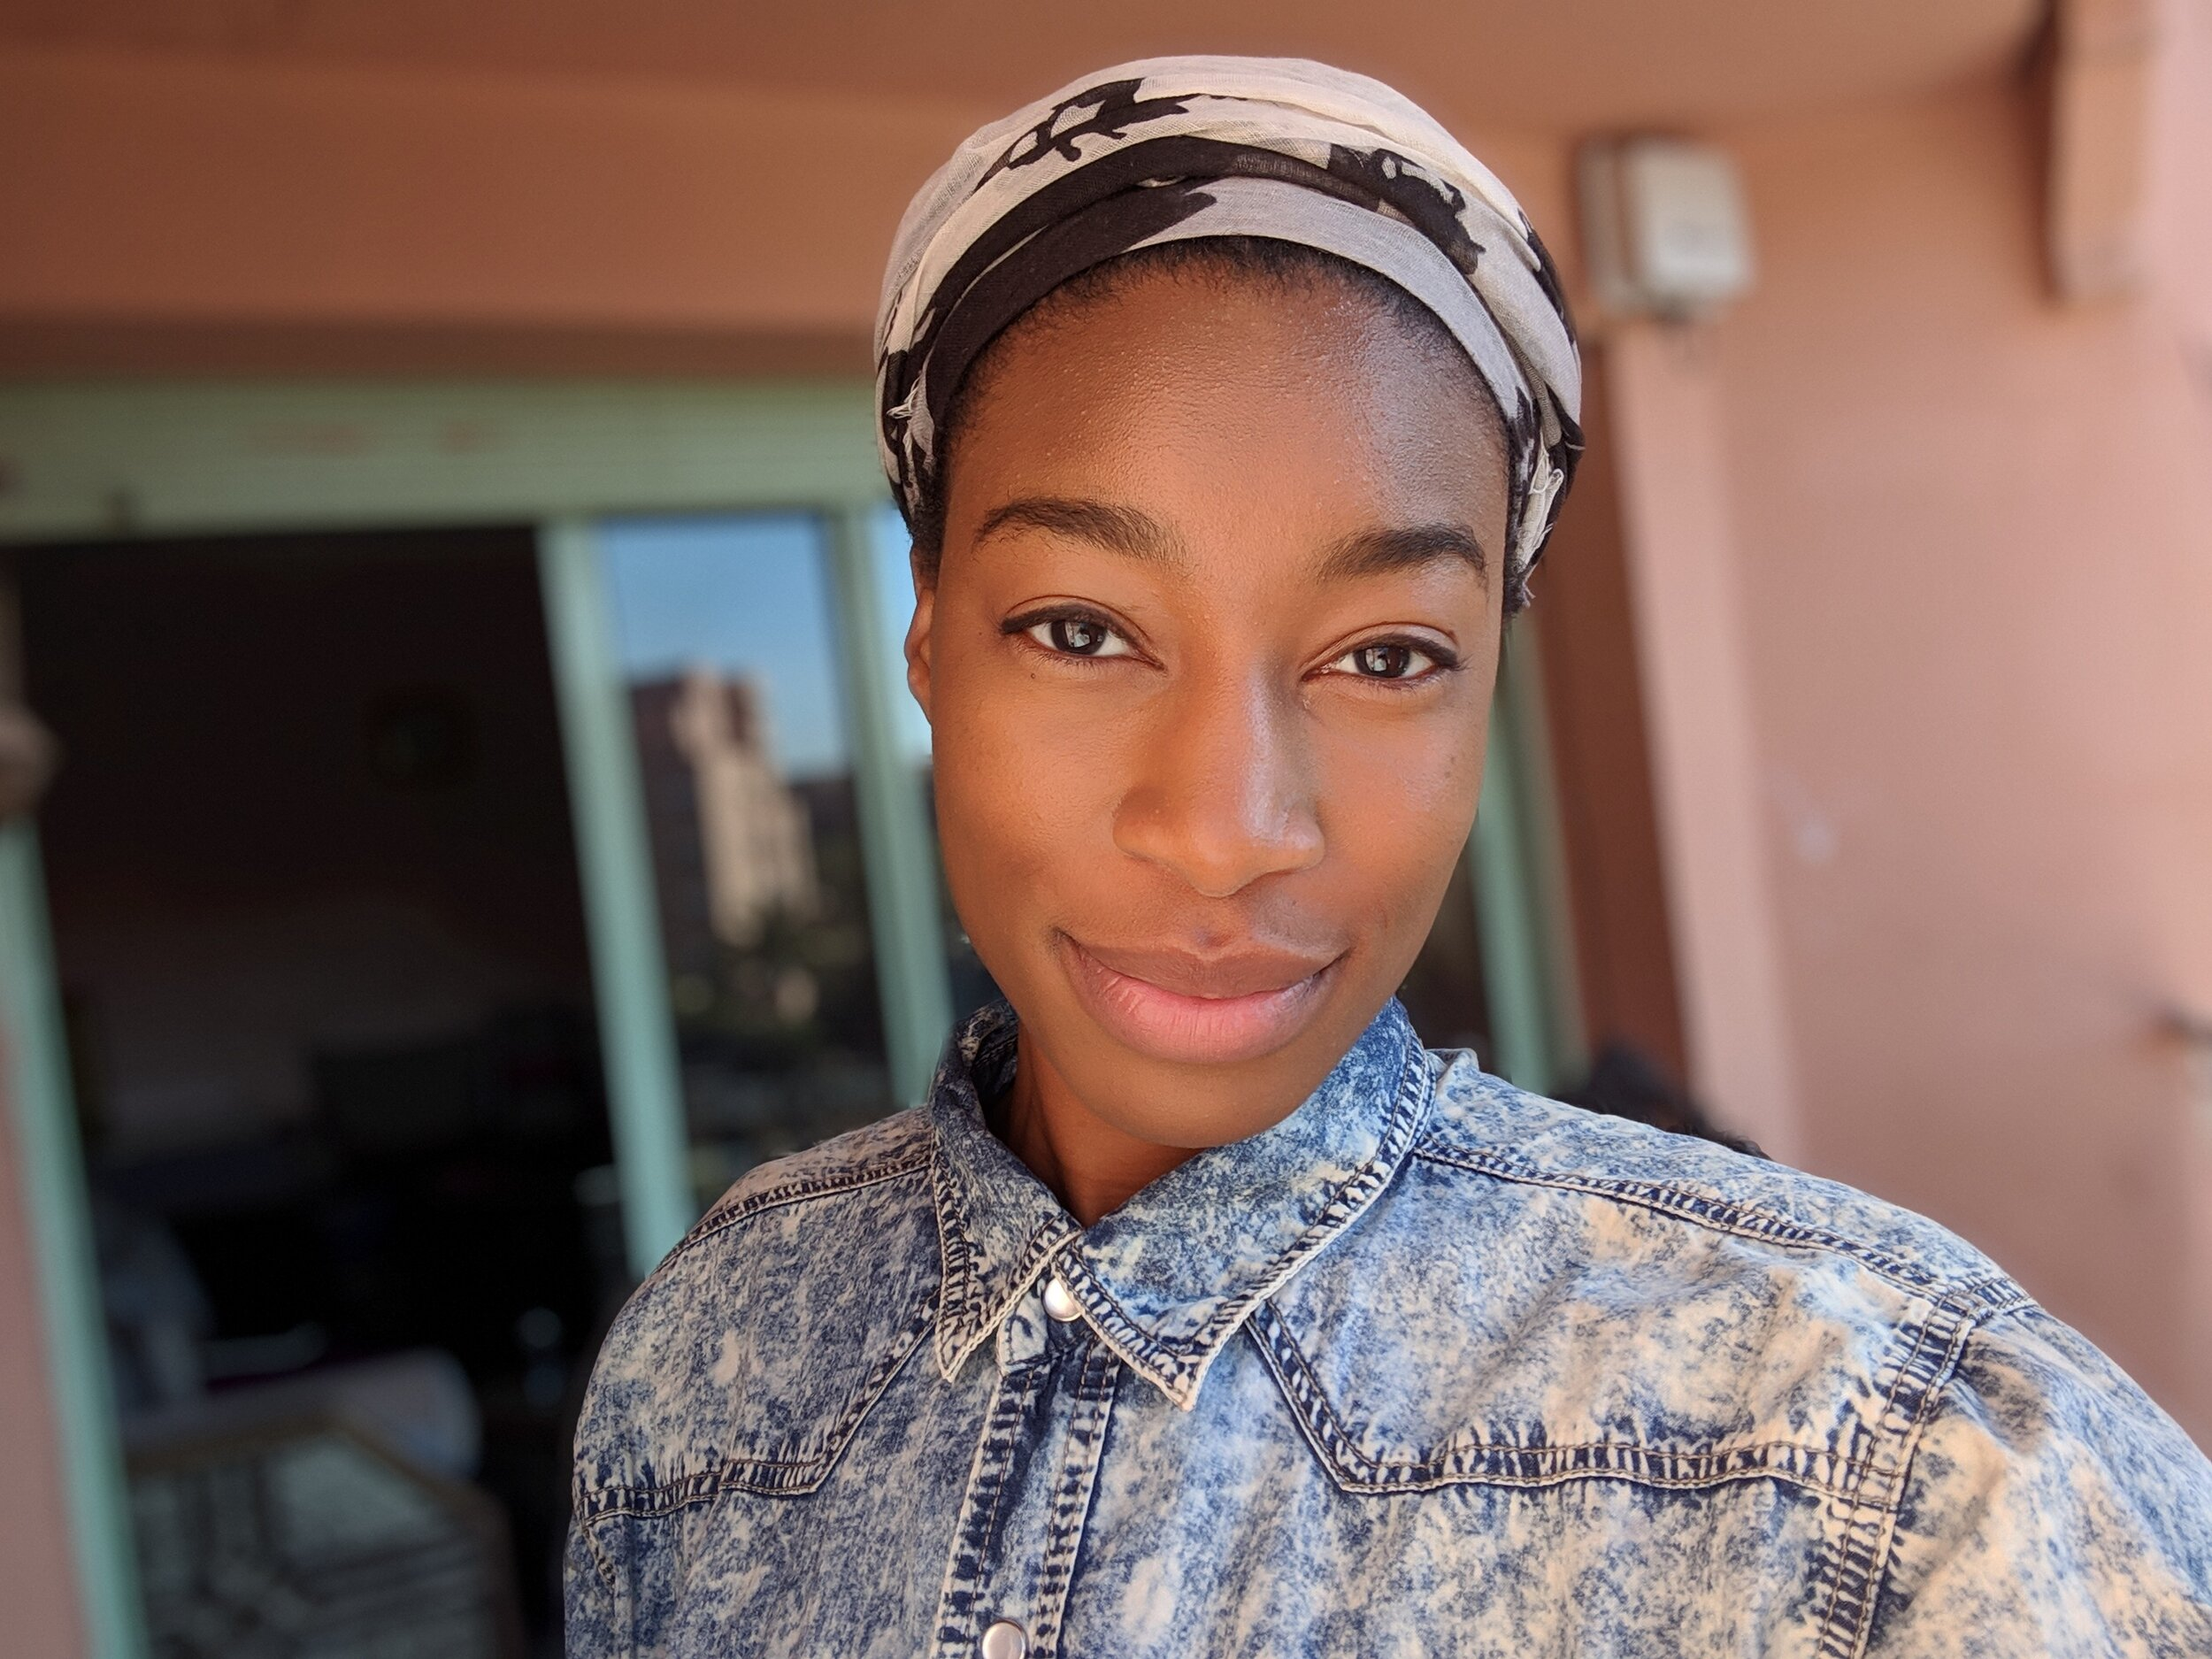 ABOUT - Chimdi Ihezie is a writer and videographer based out of Los Angeles, California.